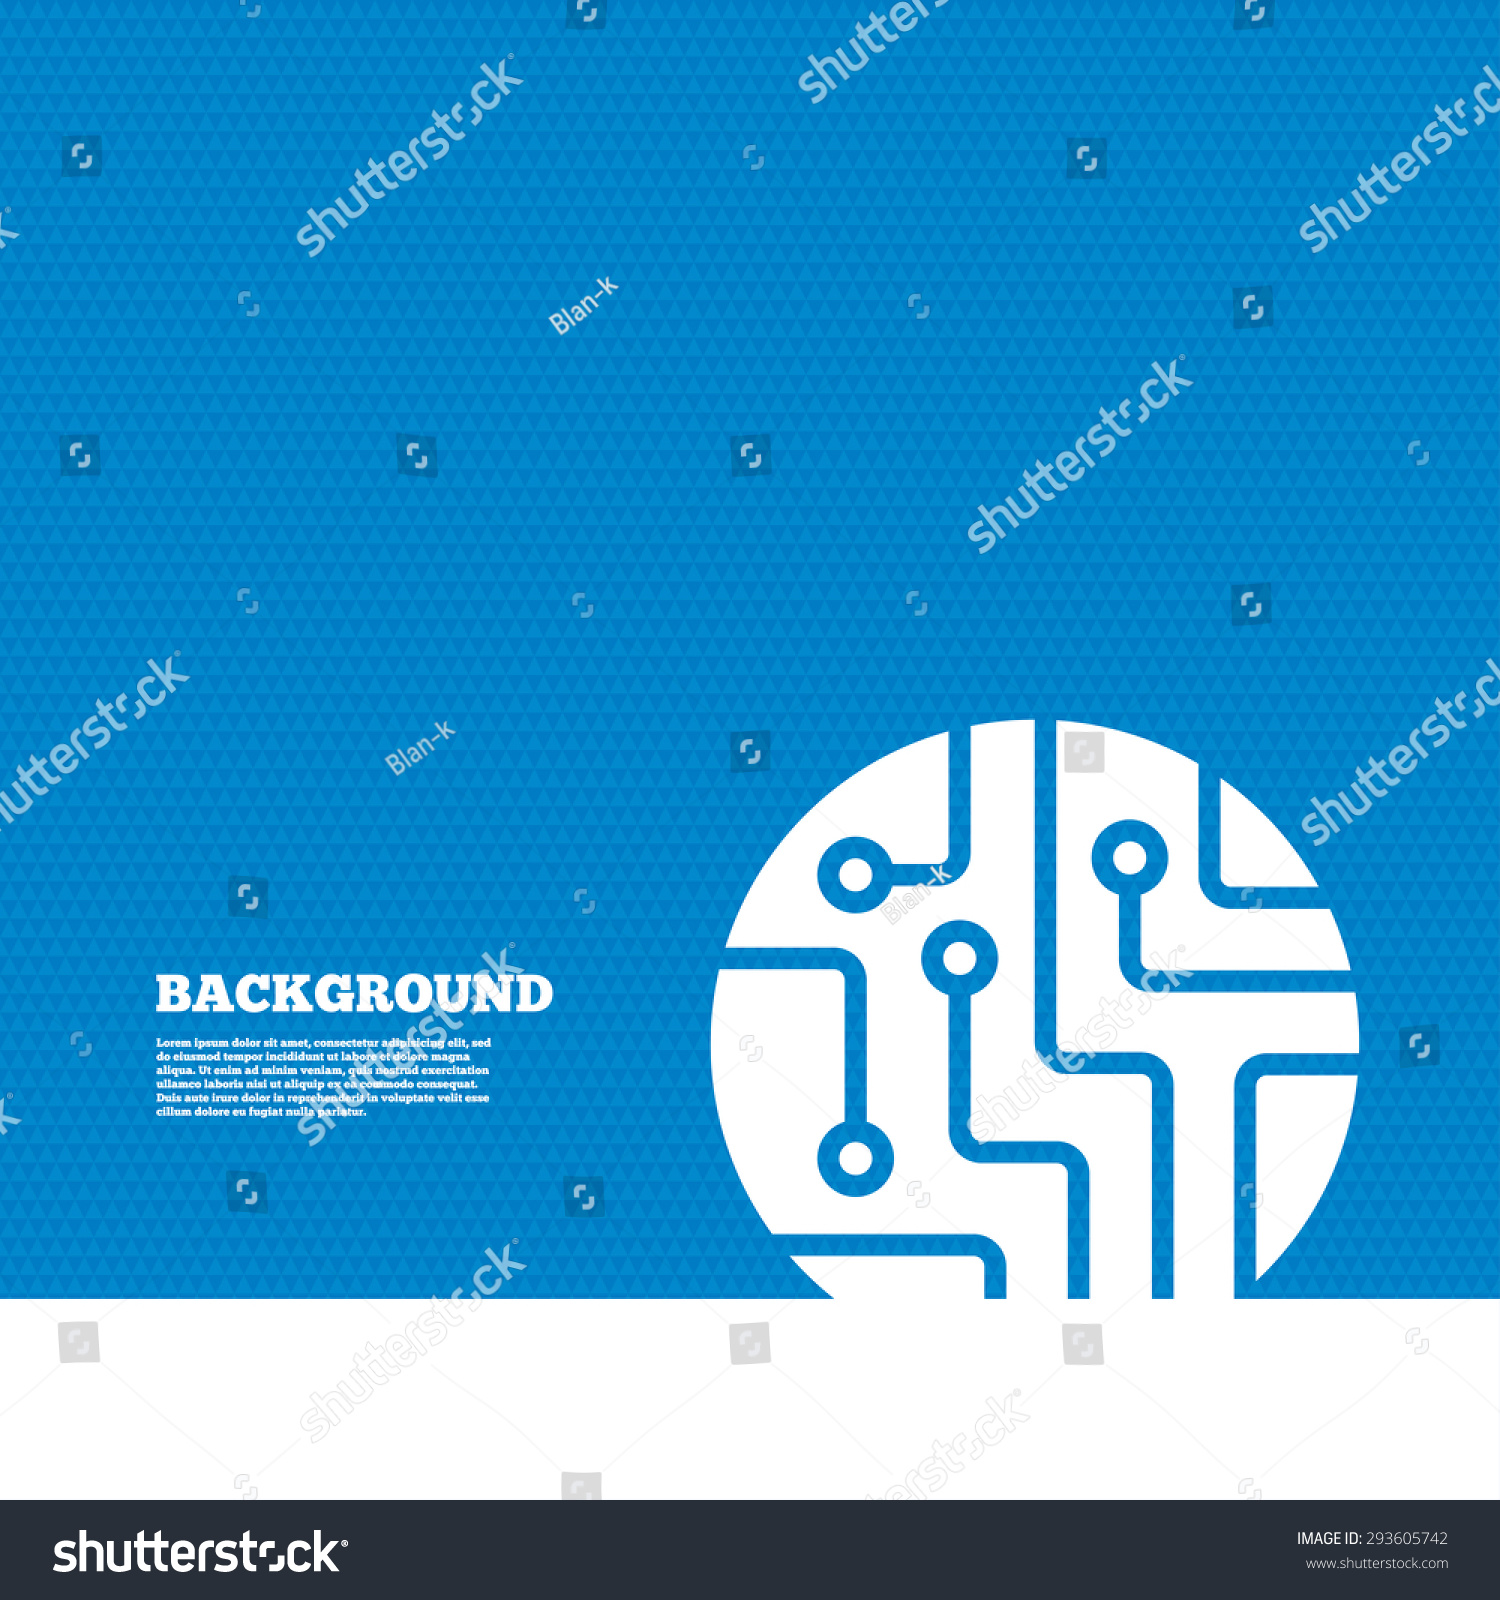 Background with seamless pattern. Circuit board sign icon. Technology  scheme circle symbol. Triangles